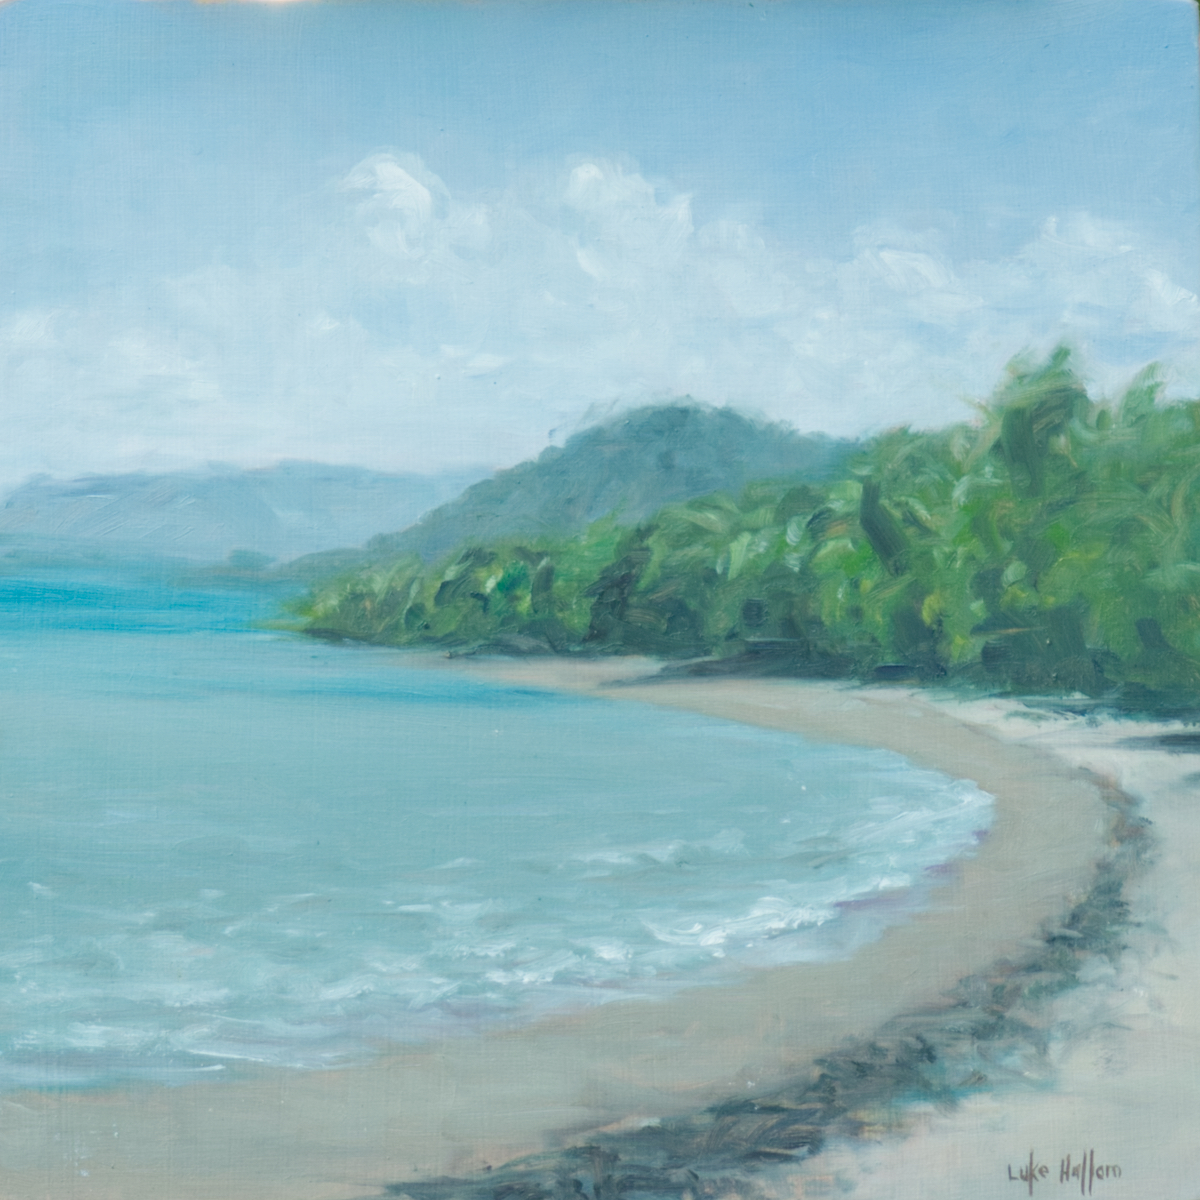 Oil on timber cradle  20cm x 20cm  –  Wonga Beach, just south of the Daintree River, looking south. Painted on the beach, in the shade of the coconut palms. Sitting inside the Great Barrier Reef, the protected Wonga Beach is a small strip of palm-lined beach between the rain forest and the sea.  Wonga Beach, North QLD, Australia.  Painted en plein air (in the open air).  An original oil painting, 20cm x 20cm on timber cradle. Shipped unframed.